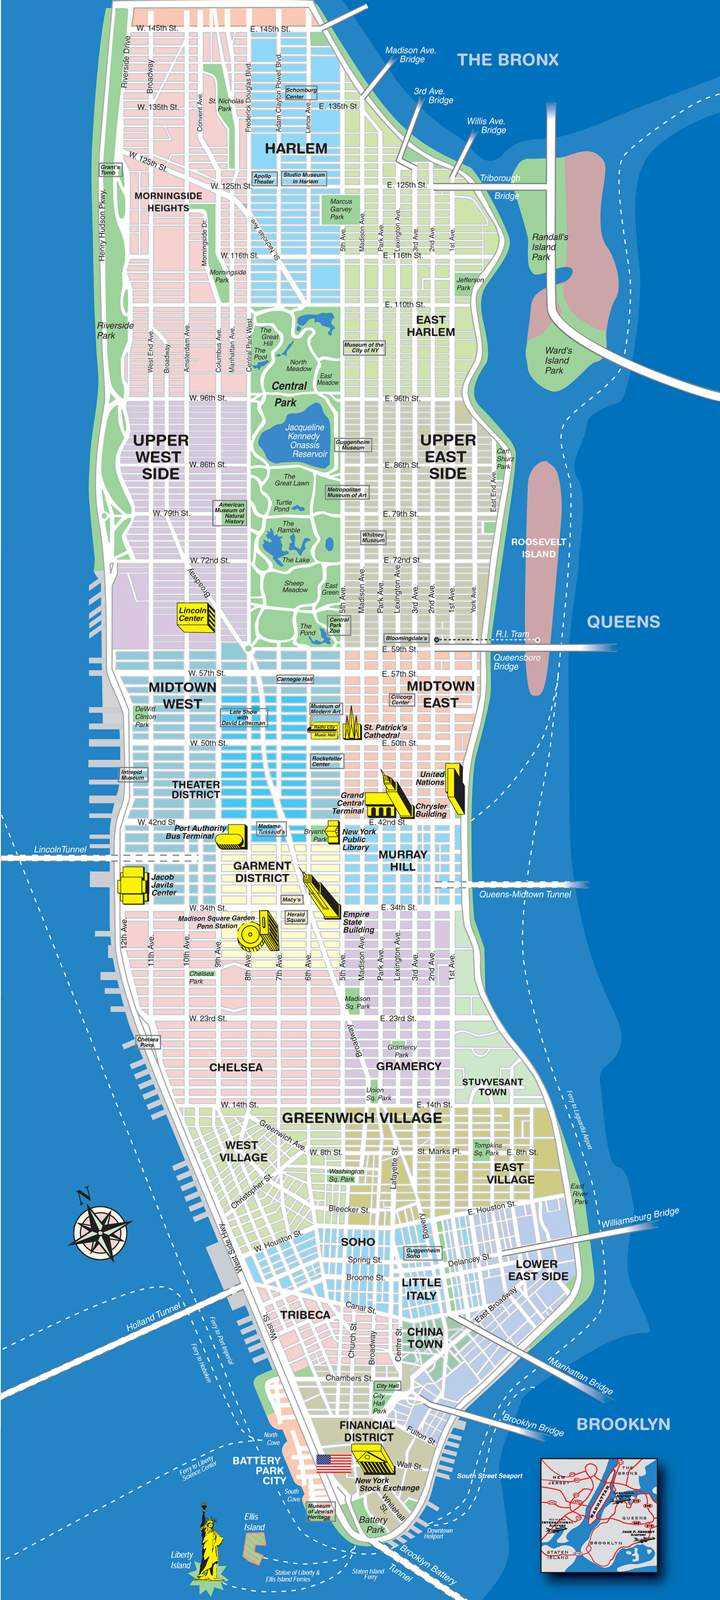 Large Manhattan Maps For Free Download And Print | High-Resolution - Nyc Walking Map Printable